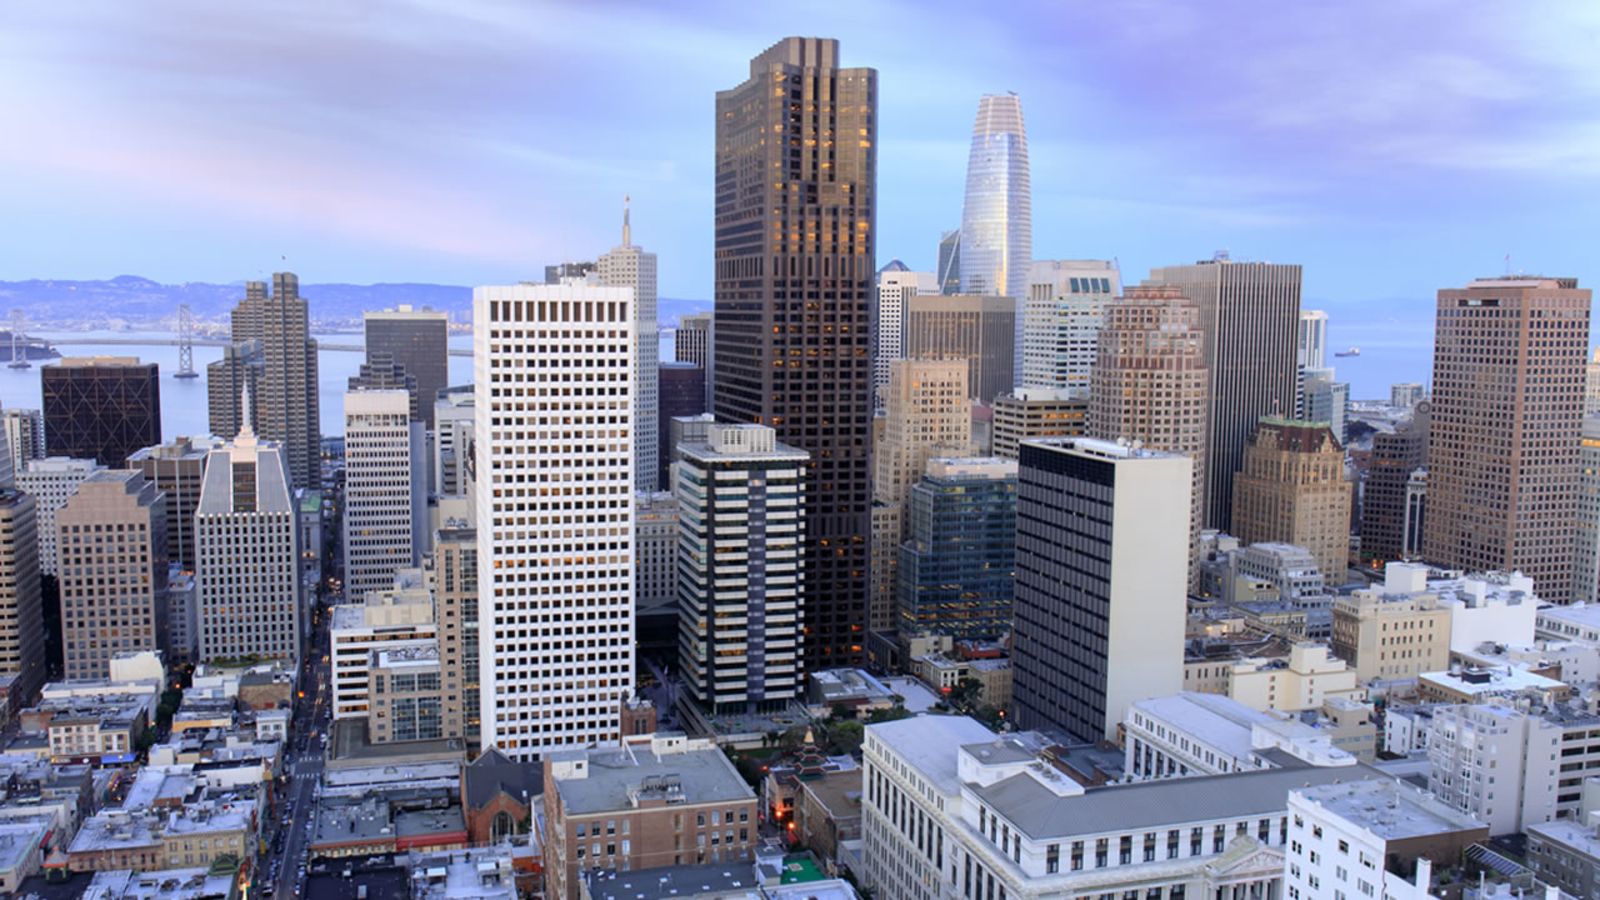 San Francisco ranked among best travel destination for seniors, according to new findings